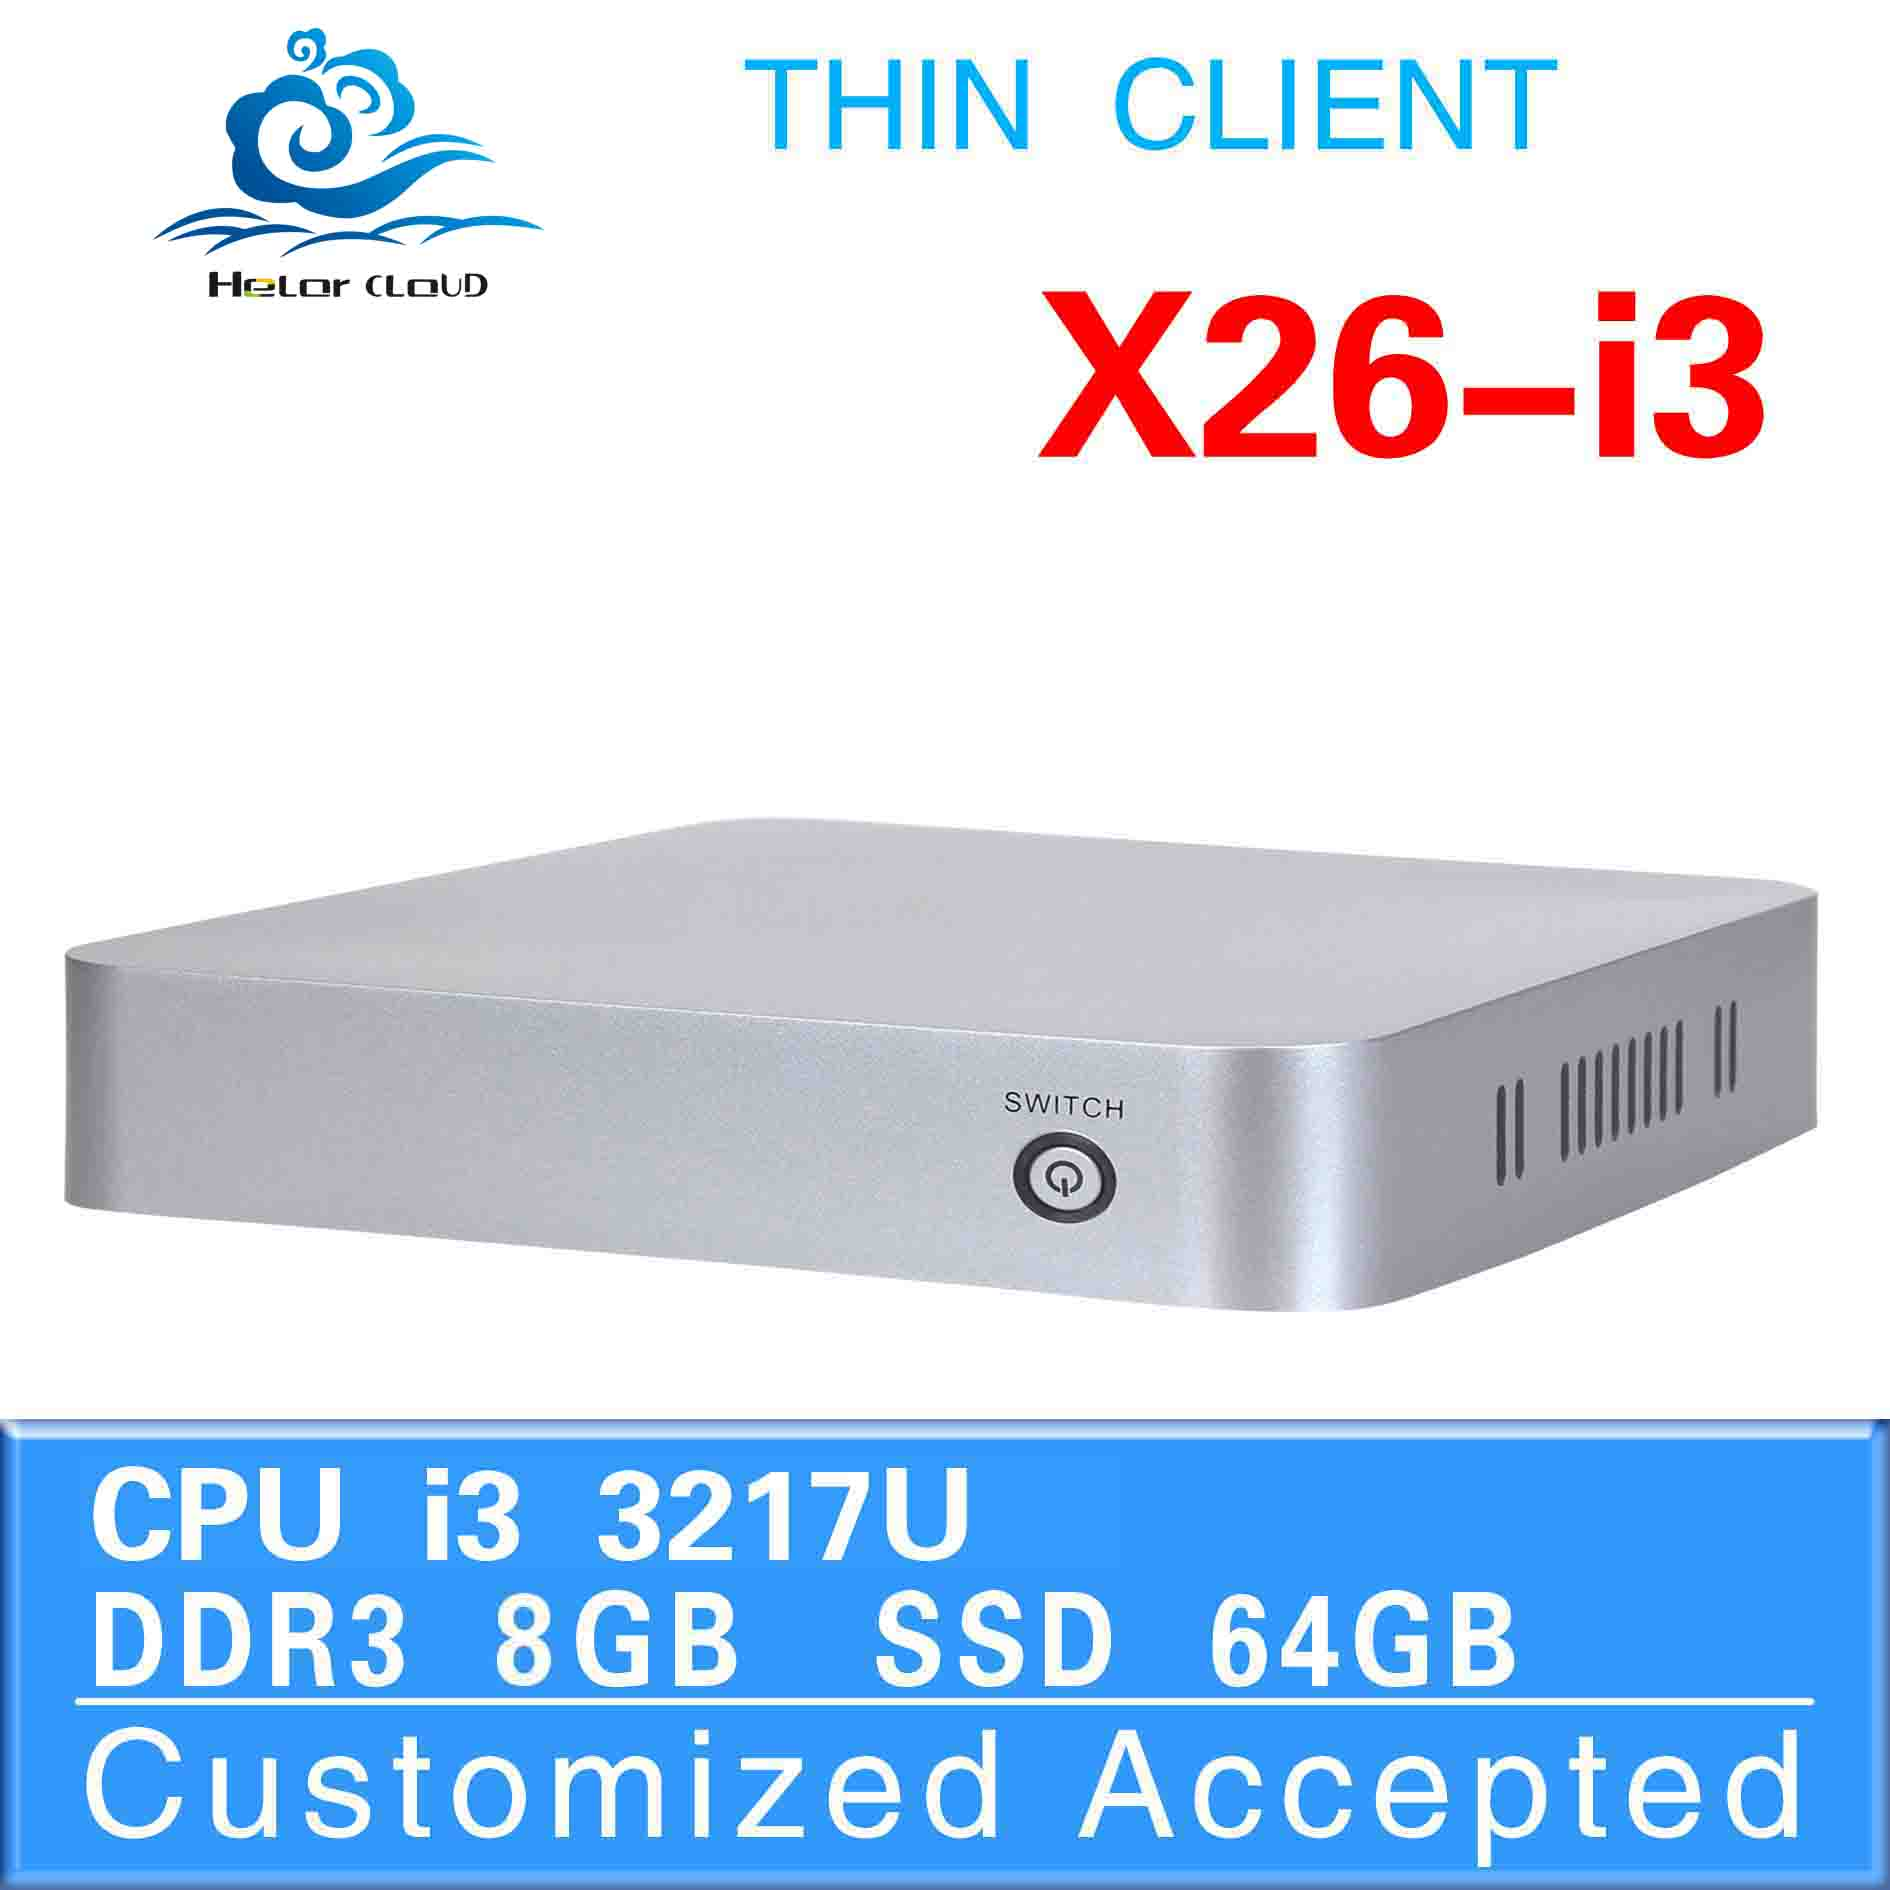 Core i3 3217u Fanless Design support Linux OS Ubuntu desktop pc mini itx case pc game 8G RAM 64G SSD(China (Mainland))